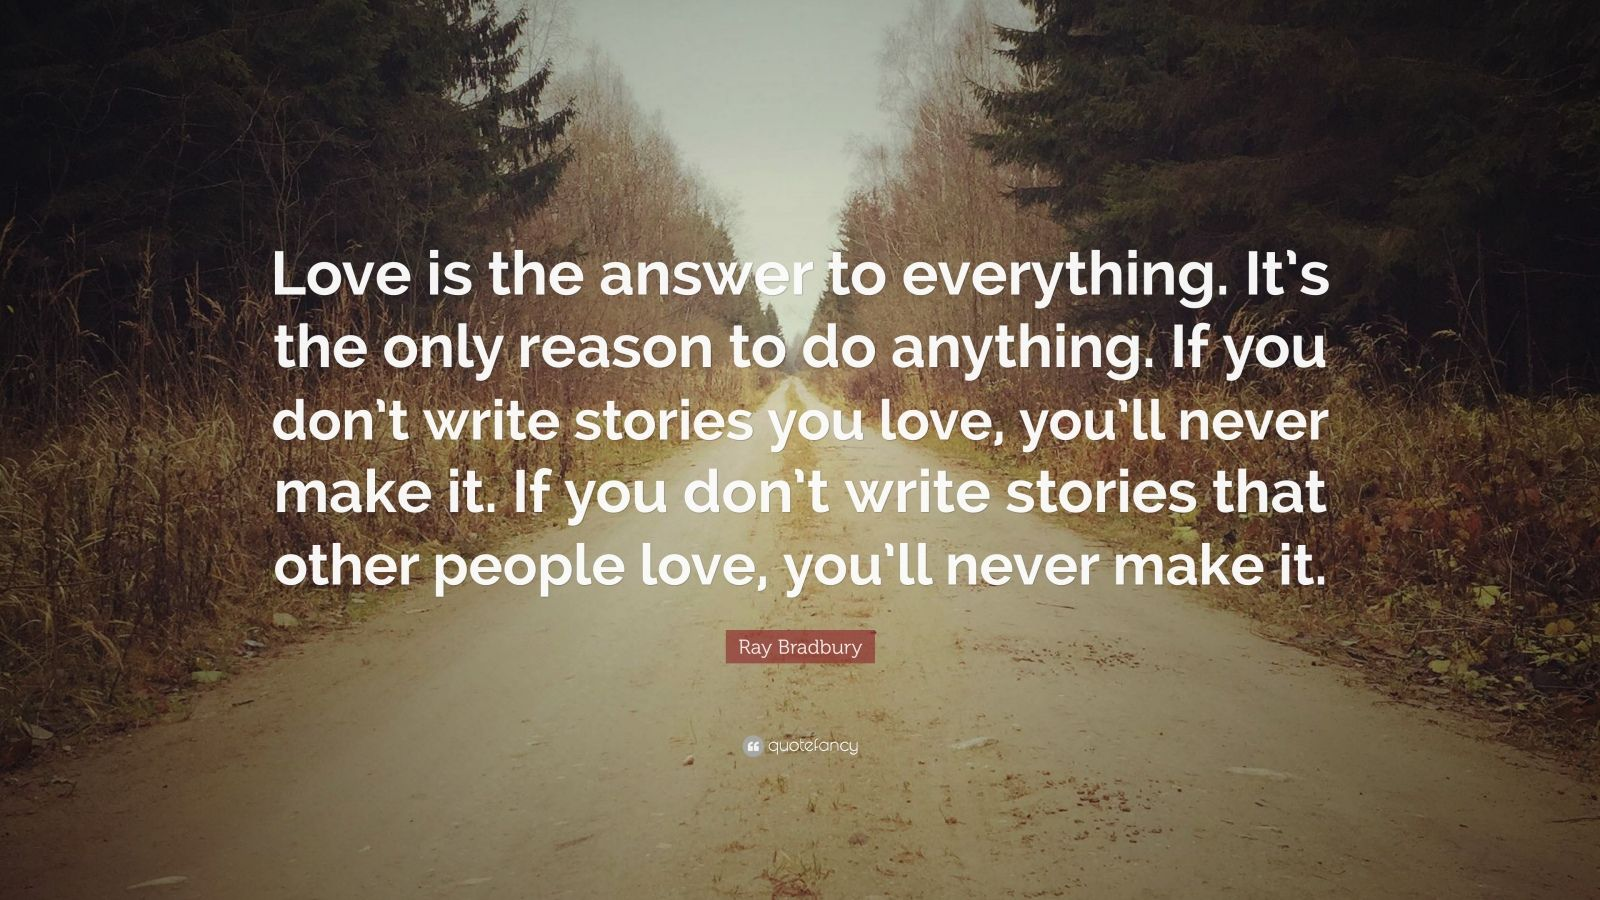 "Ray Bradbury Quote: ""Love is the answer to everything. It's the only reason to do anything. If you don't write stories you love, you'll never make it. If you don't write stories that other people love, you'll never make it."""